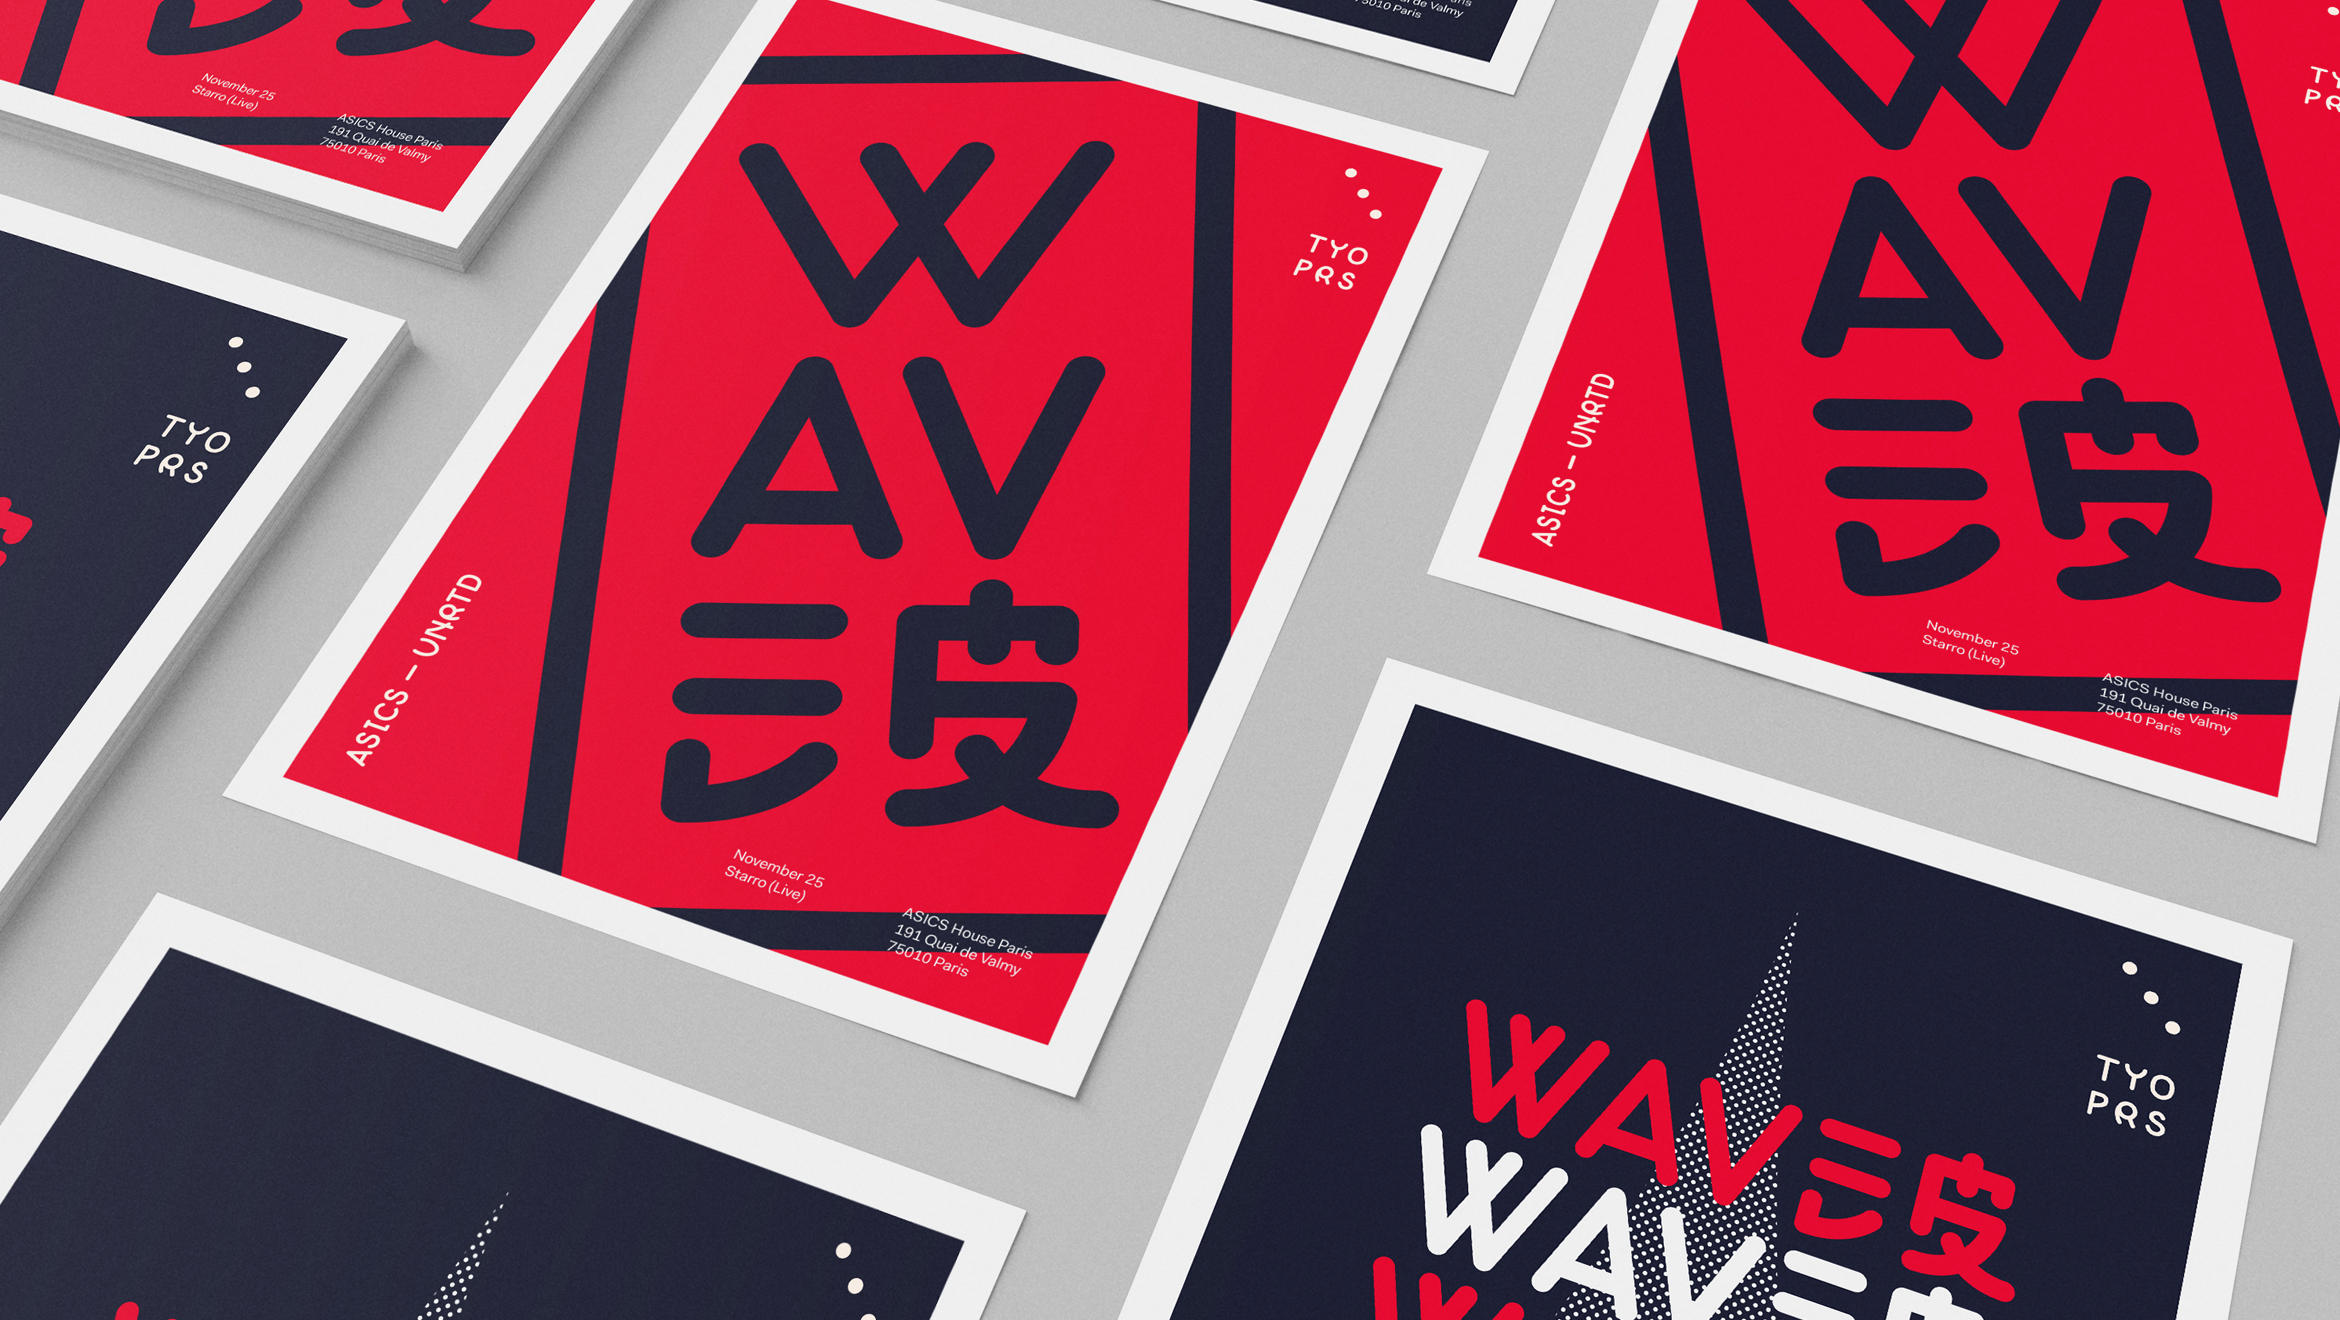 TBS_Waves_Posters_Stacked_1